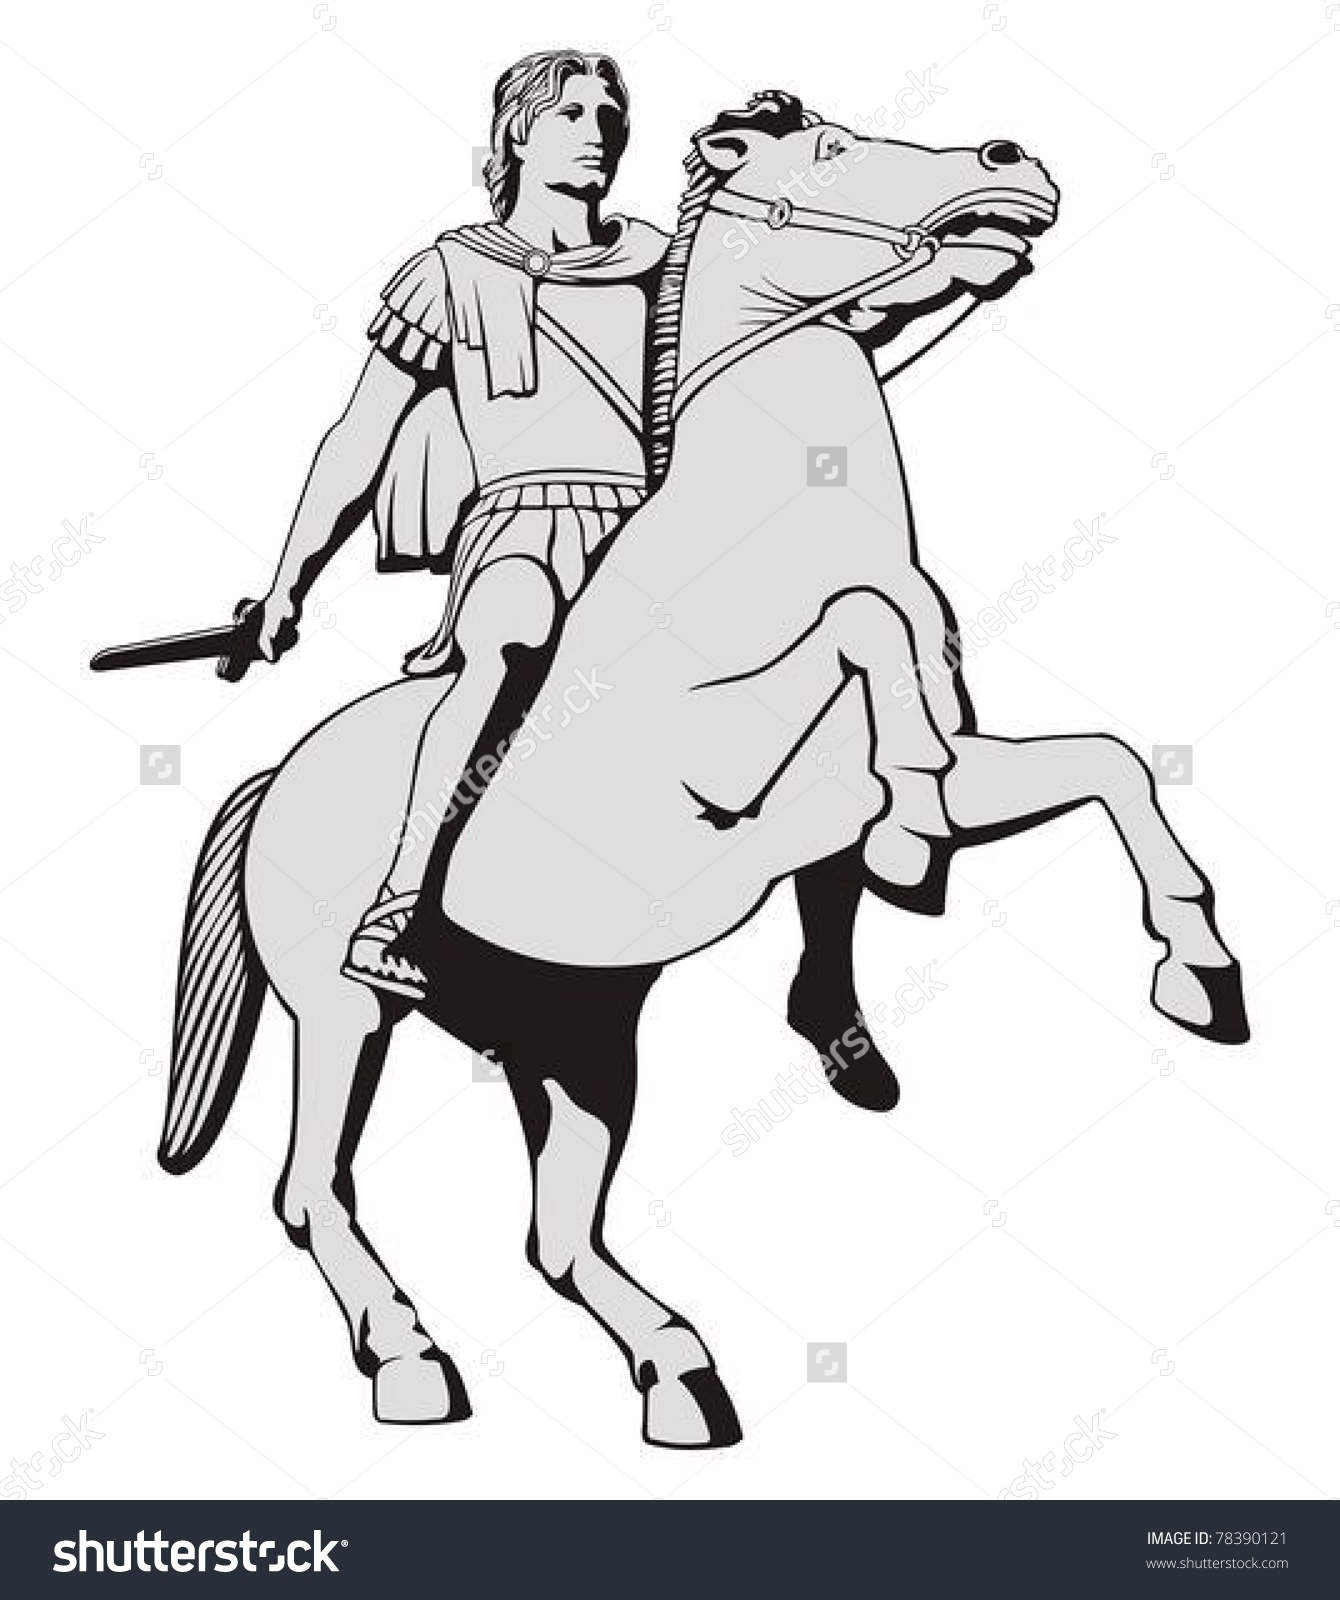 Illustration Alexander Great Riding His Horse Stock Vector.